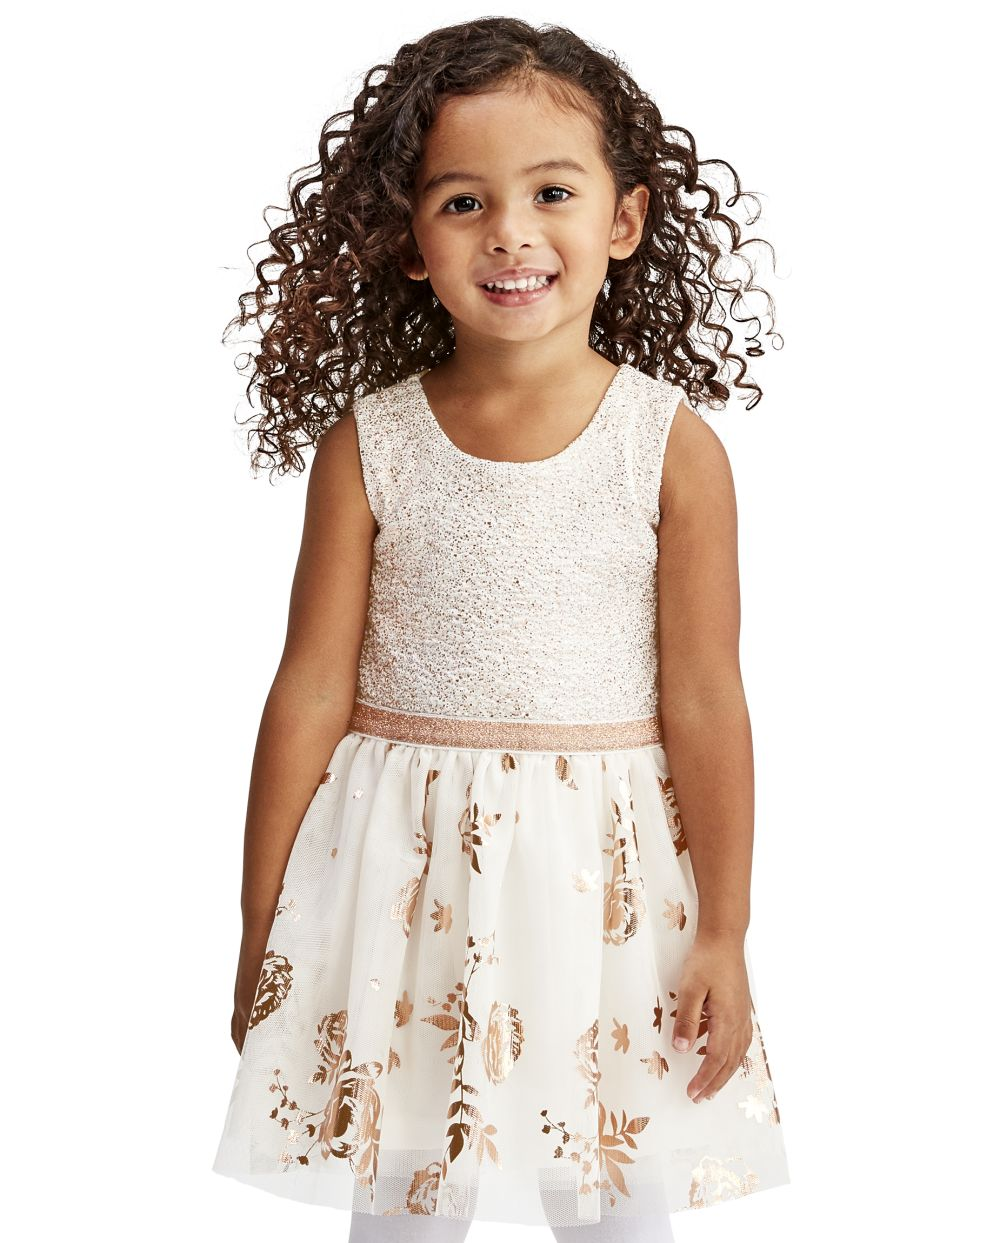 s Toddler Foil Rose Gold Knit To Woven Dress - White - The Children's Place